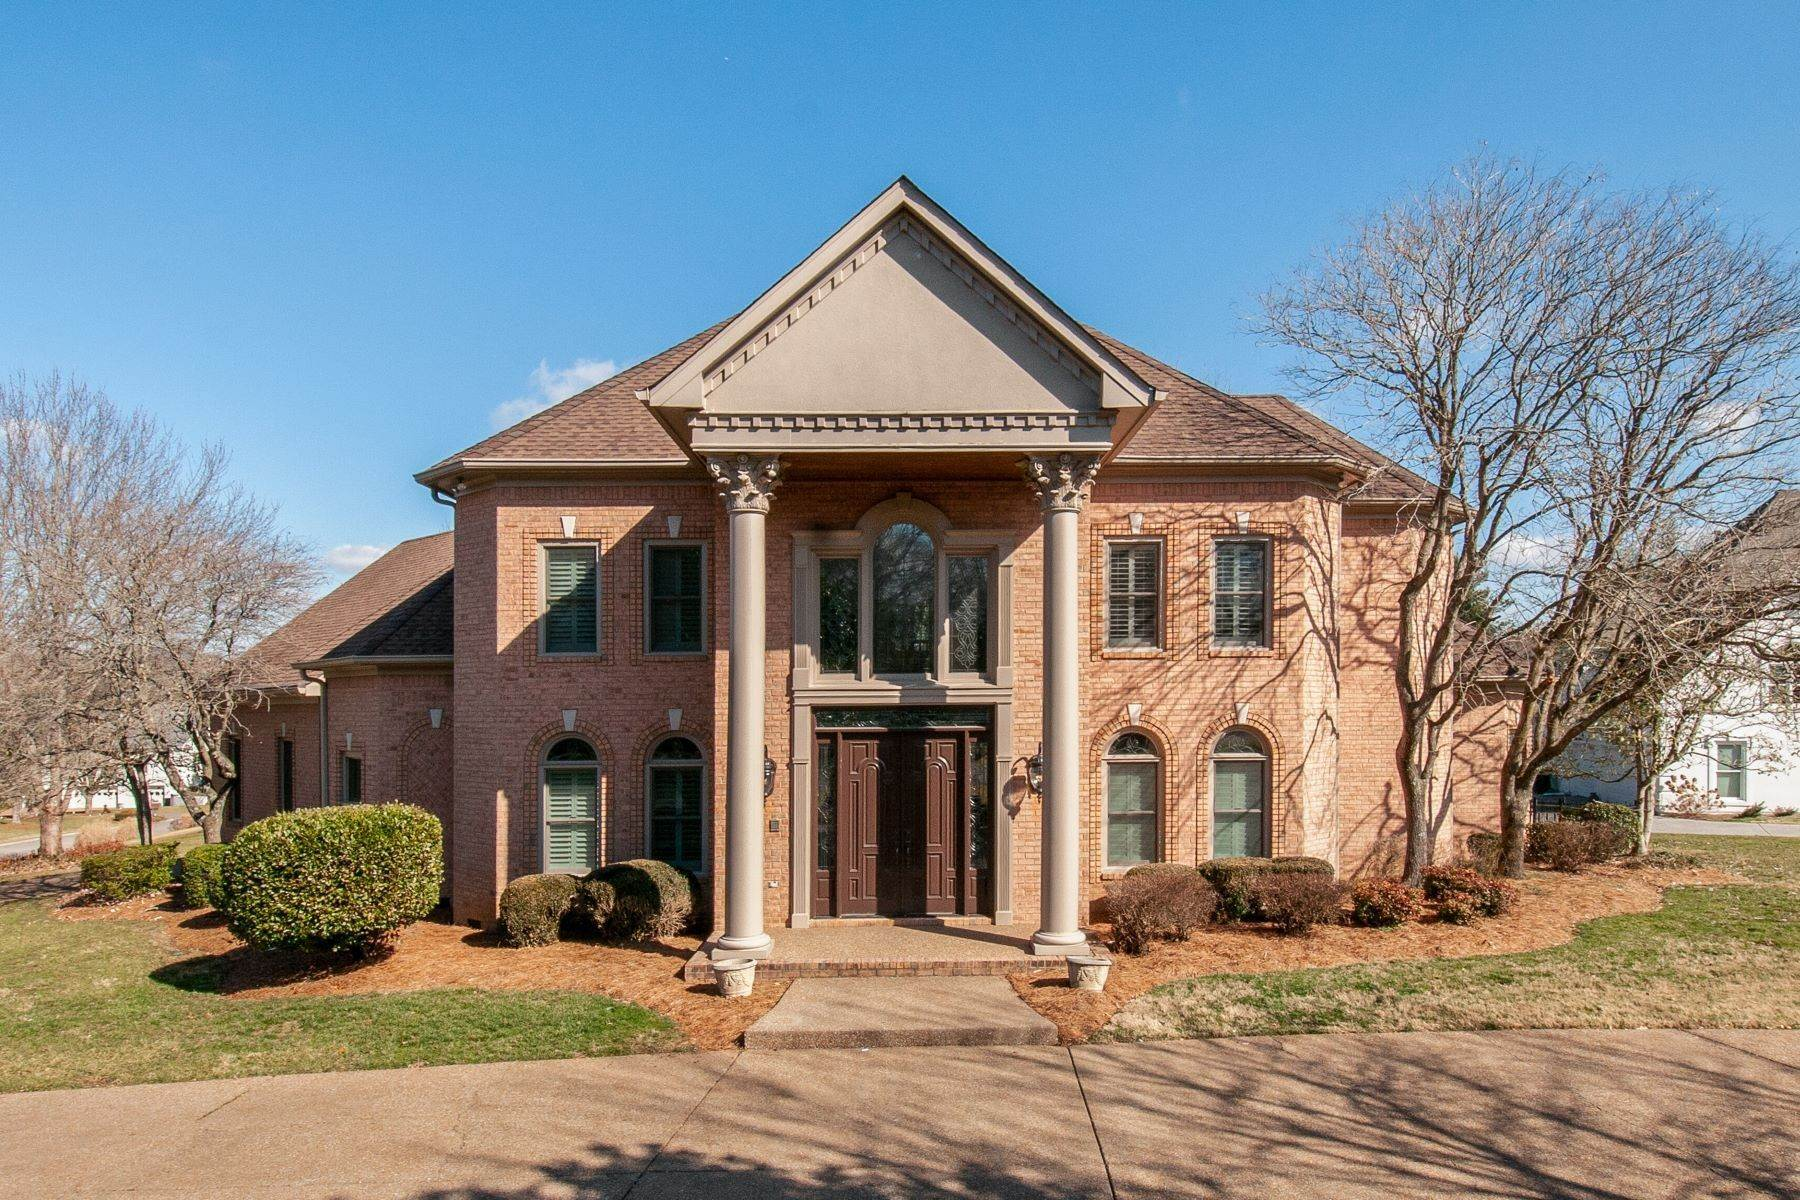 Single Family Homes for Sale at 683 Old Orchard Road, Brentwood, TN 37027 683 Old Orchard Road Brentwood, Tennessee 37027 United States